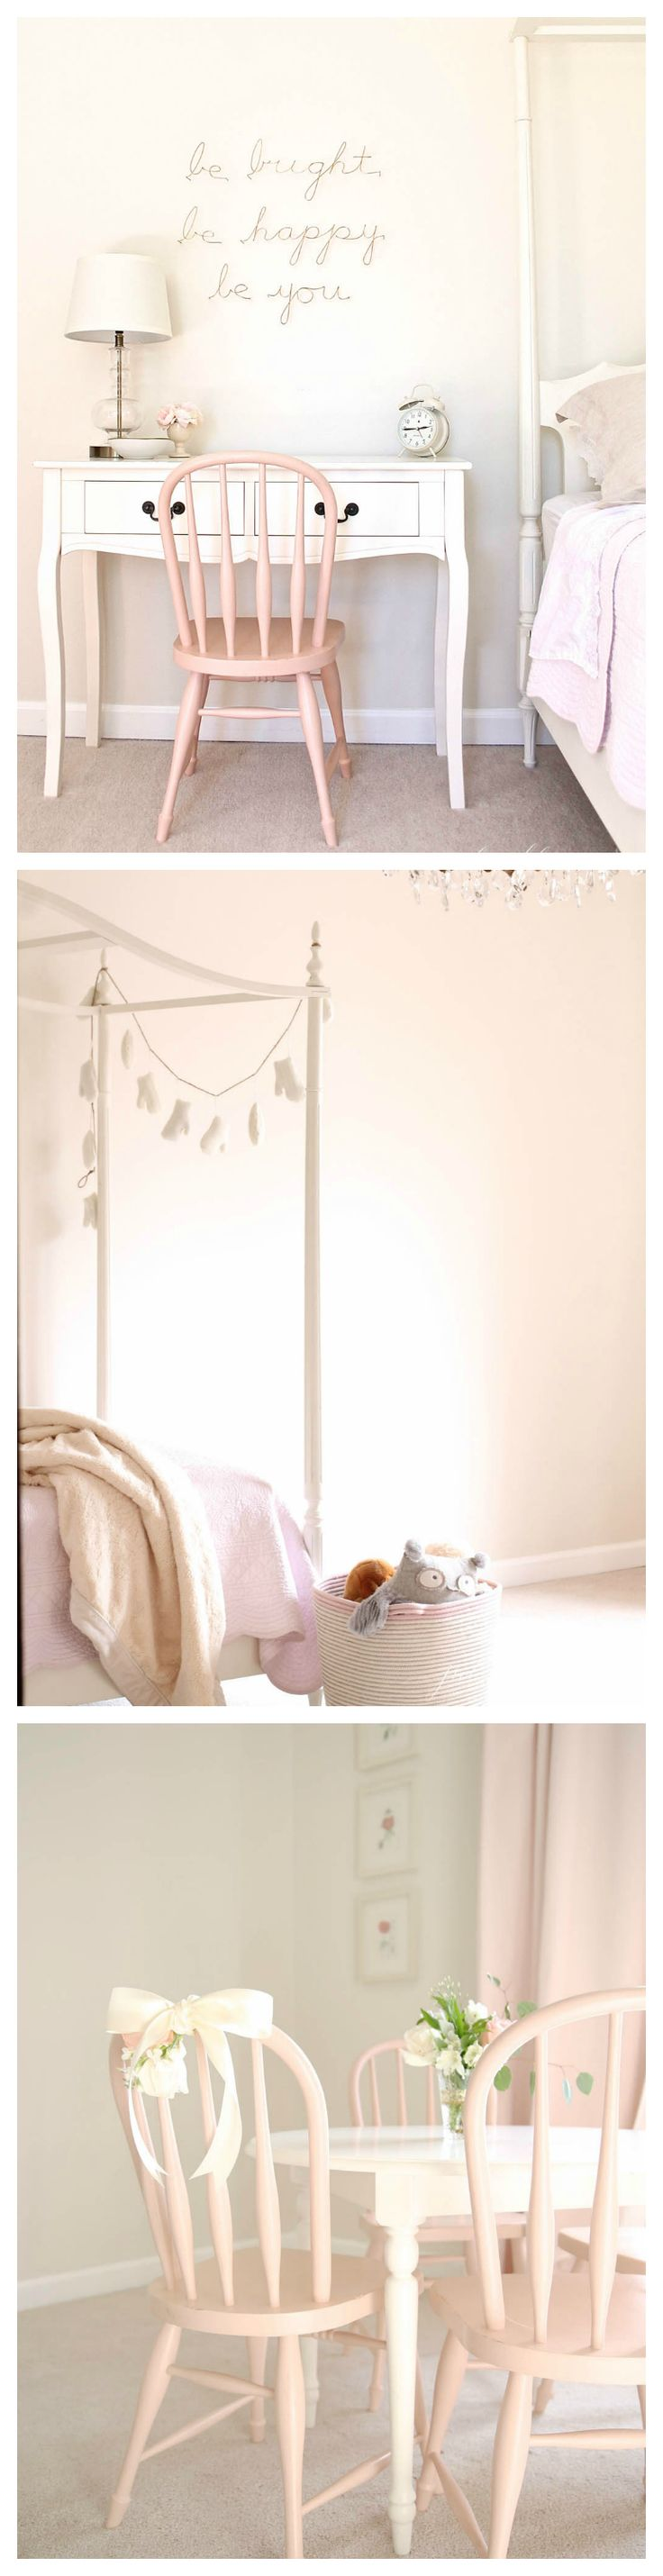 Best 25+ Simple girls bedroom ideas on Pinterest | Girls bedroom ...